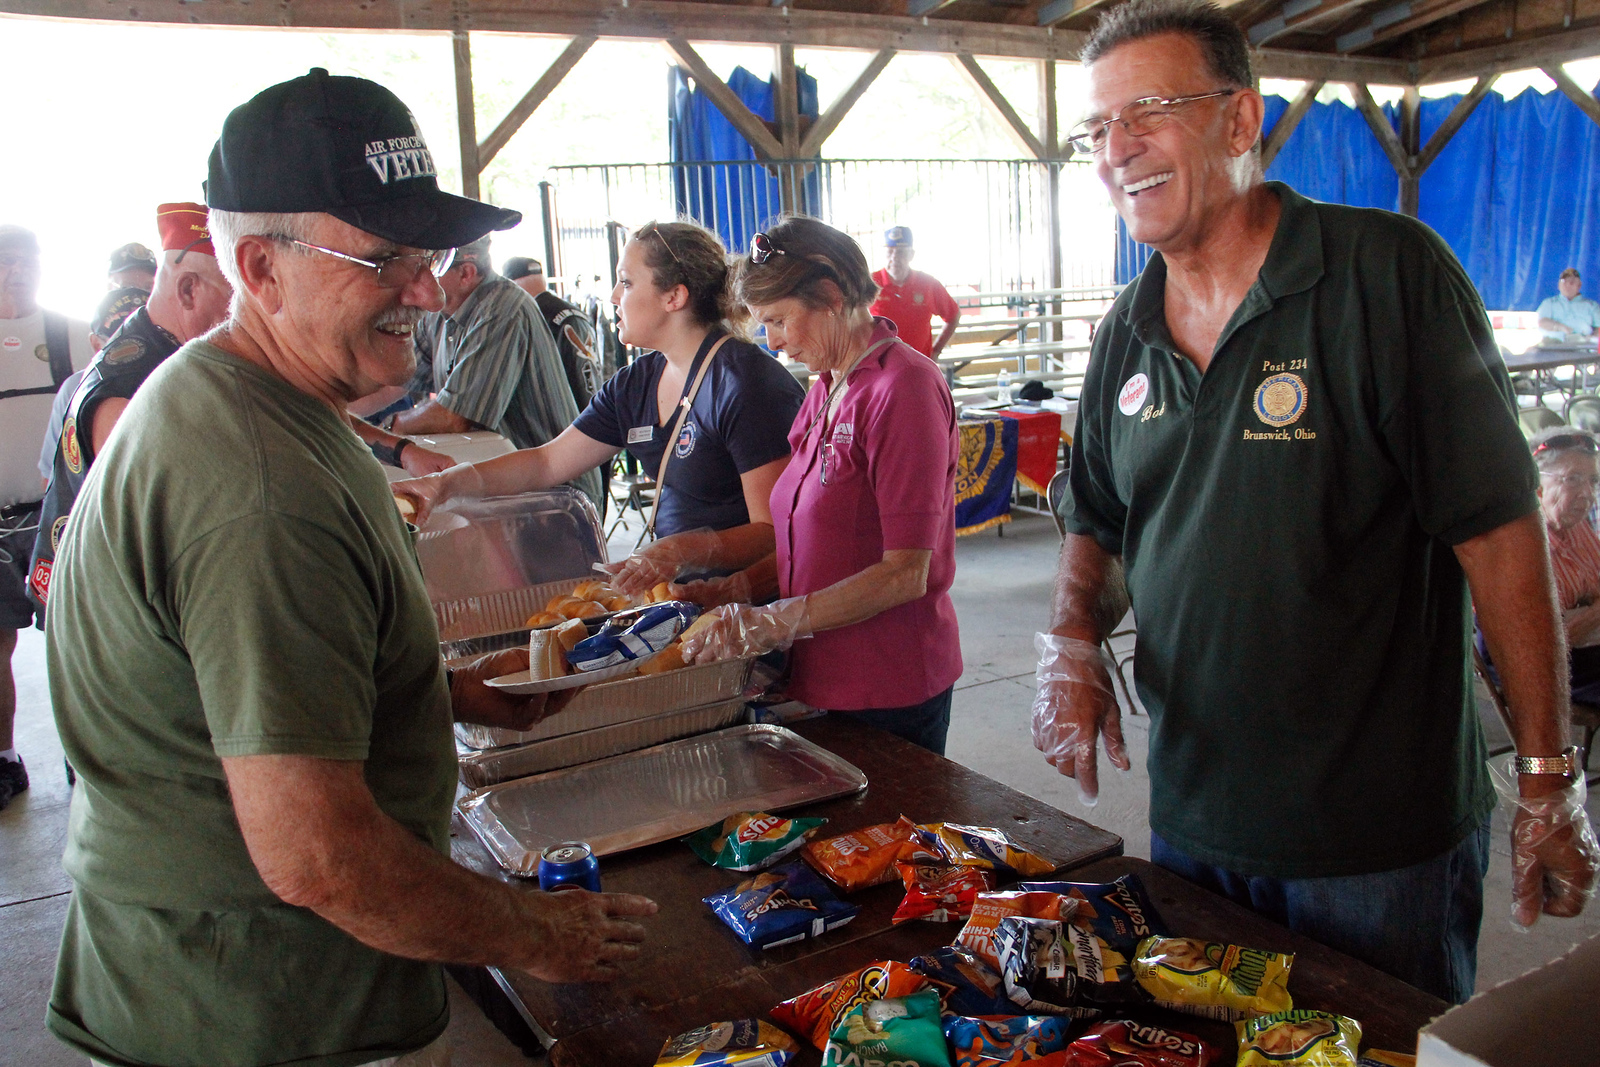 ALEC SMITH / GAZETTE